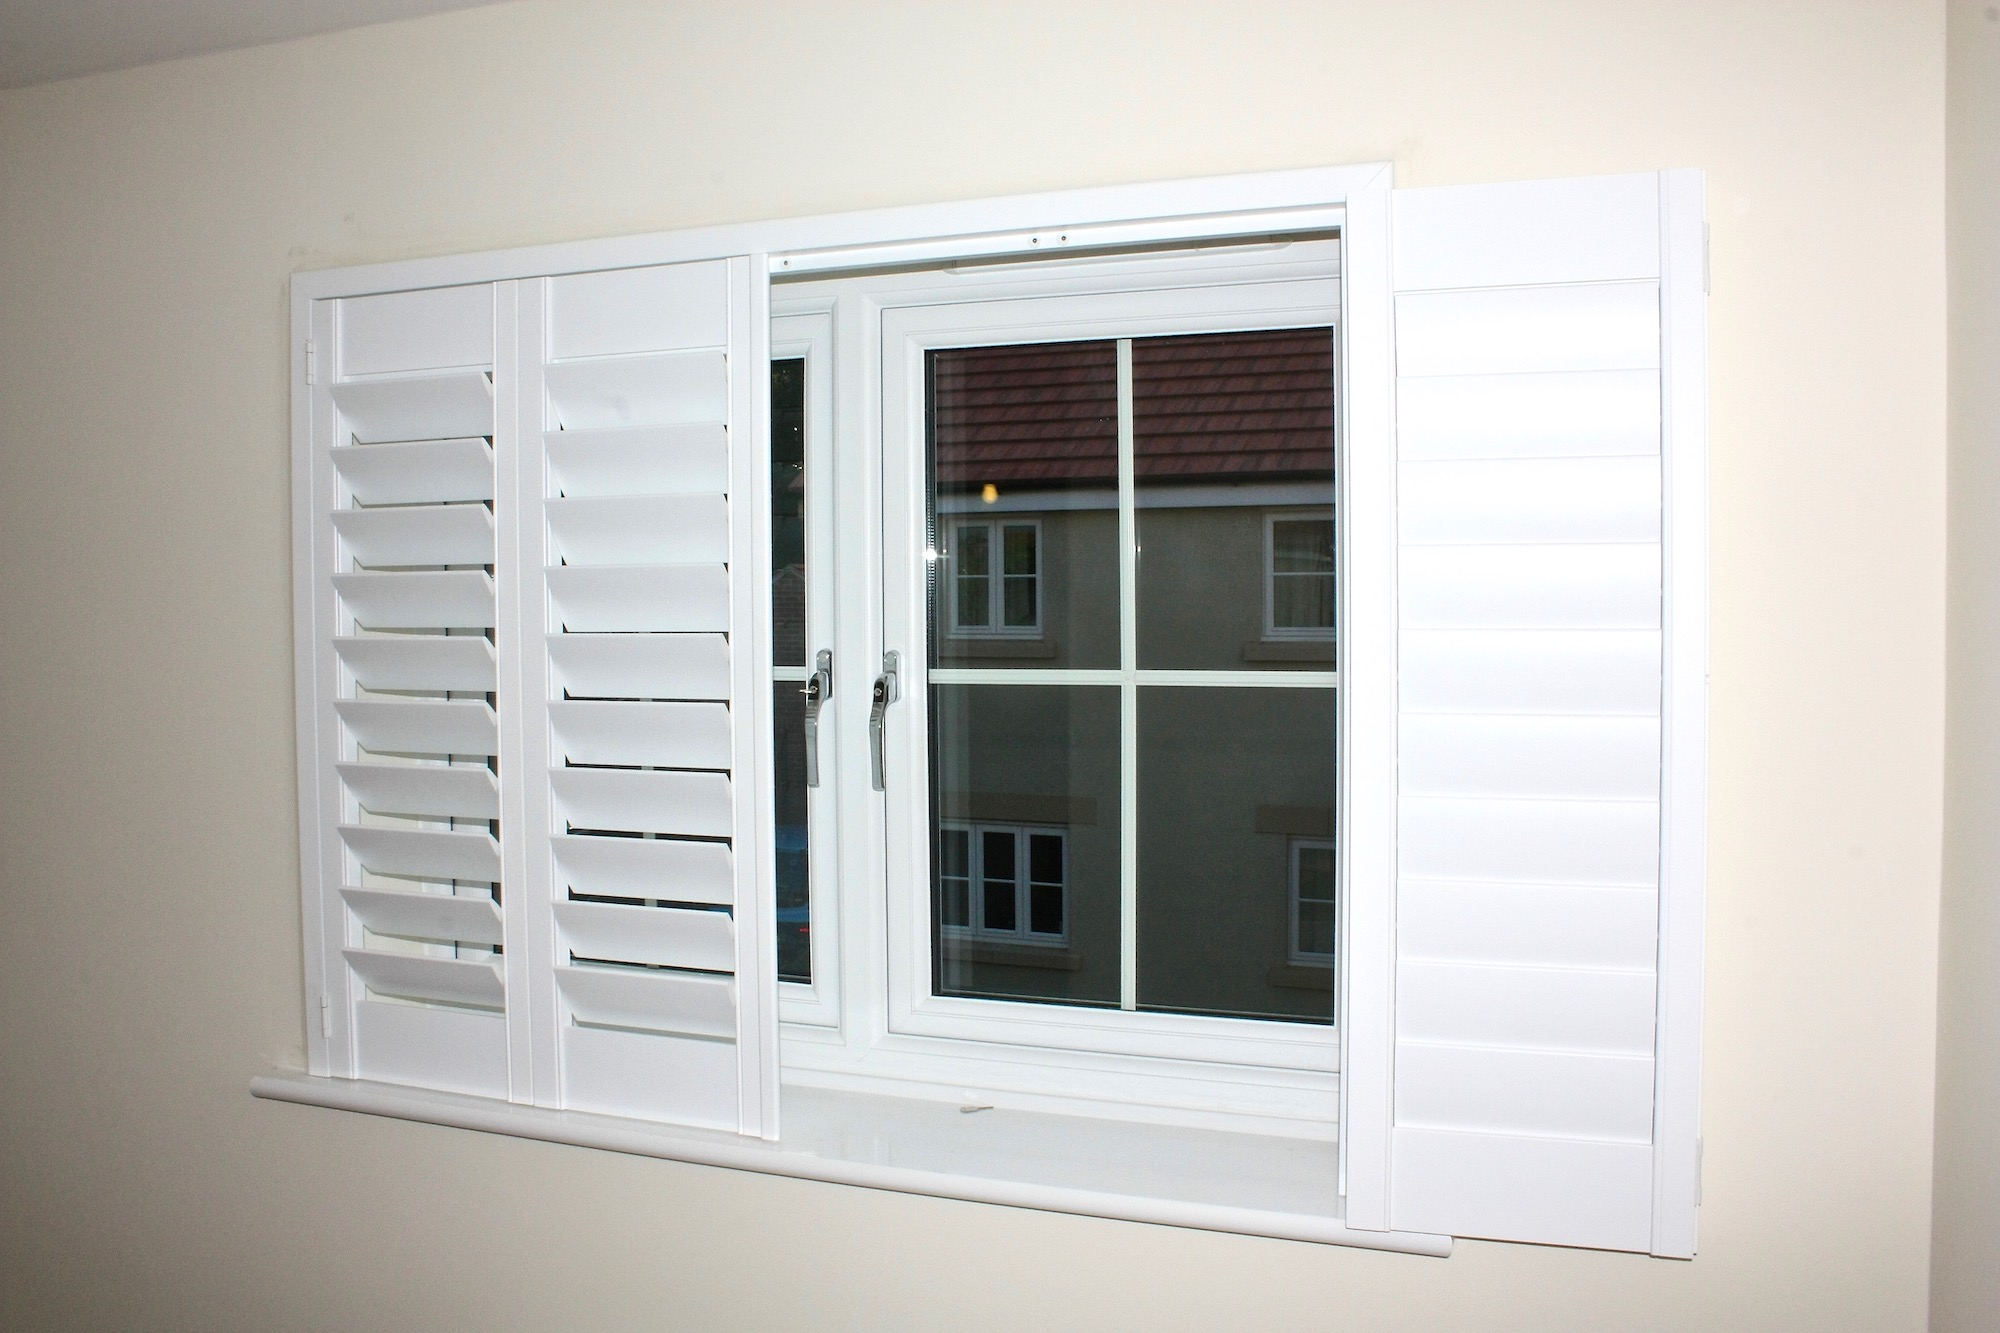 Bifolding Shutters With Blackout Blind In A Bedroom